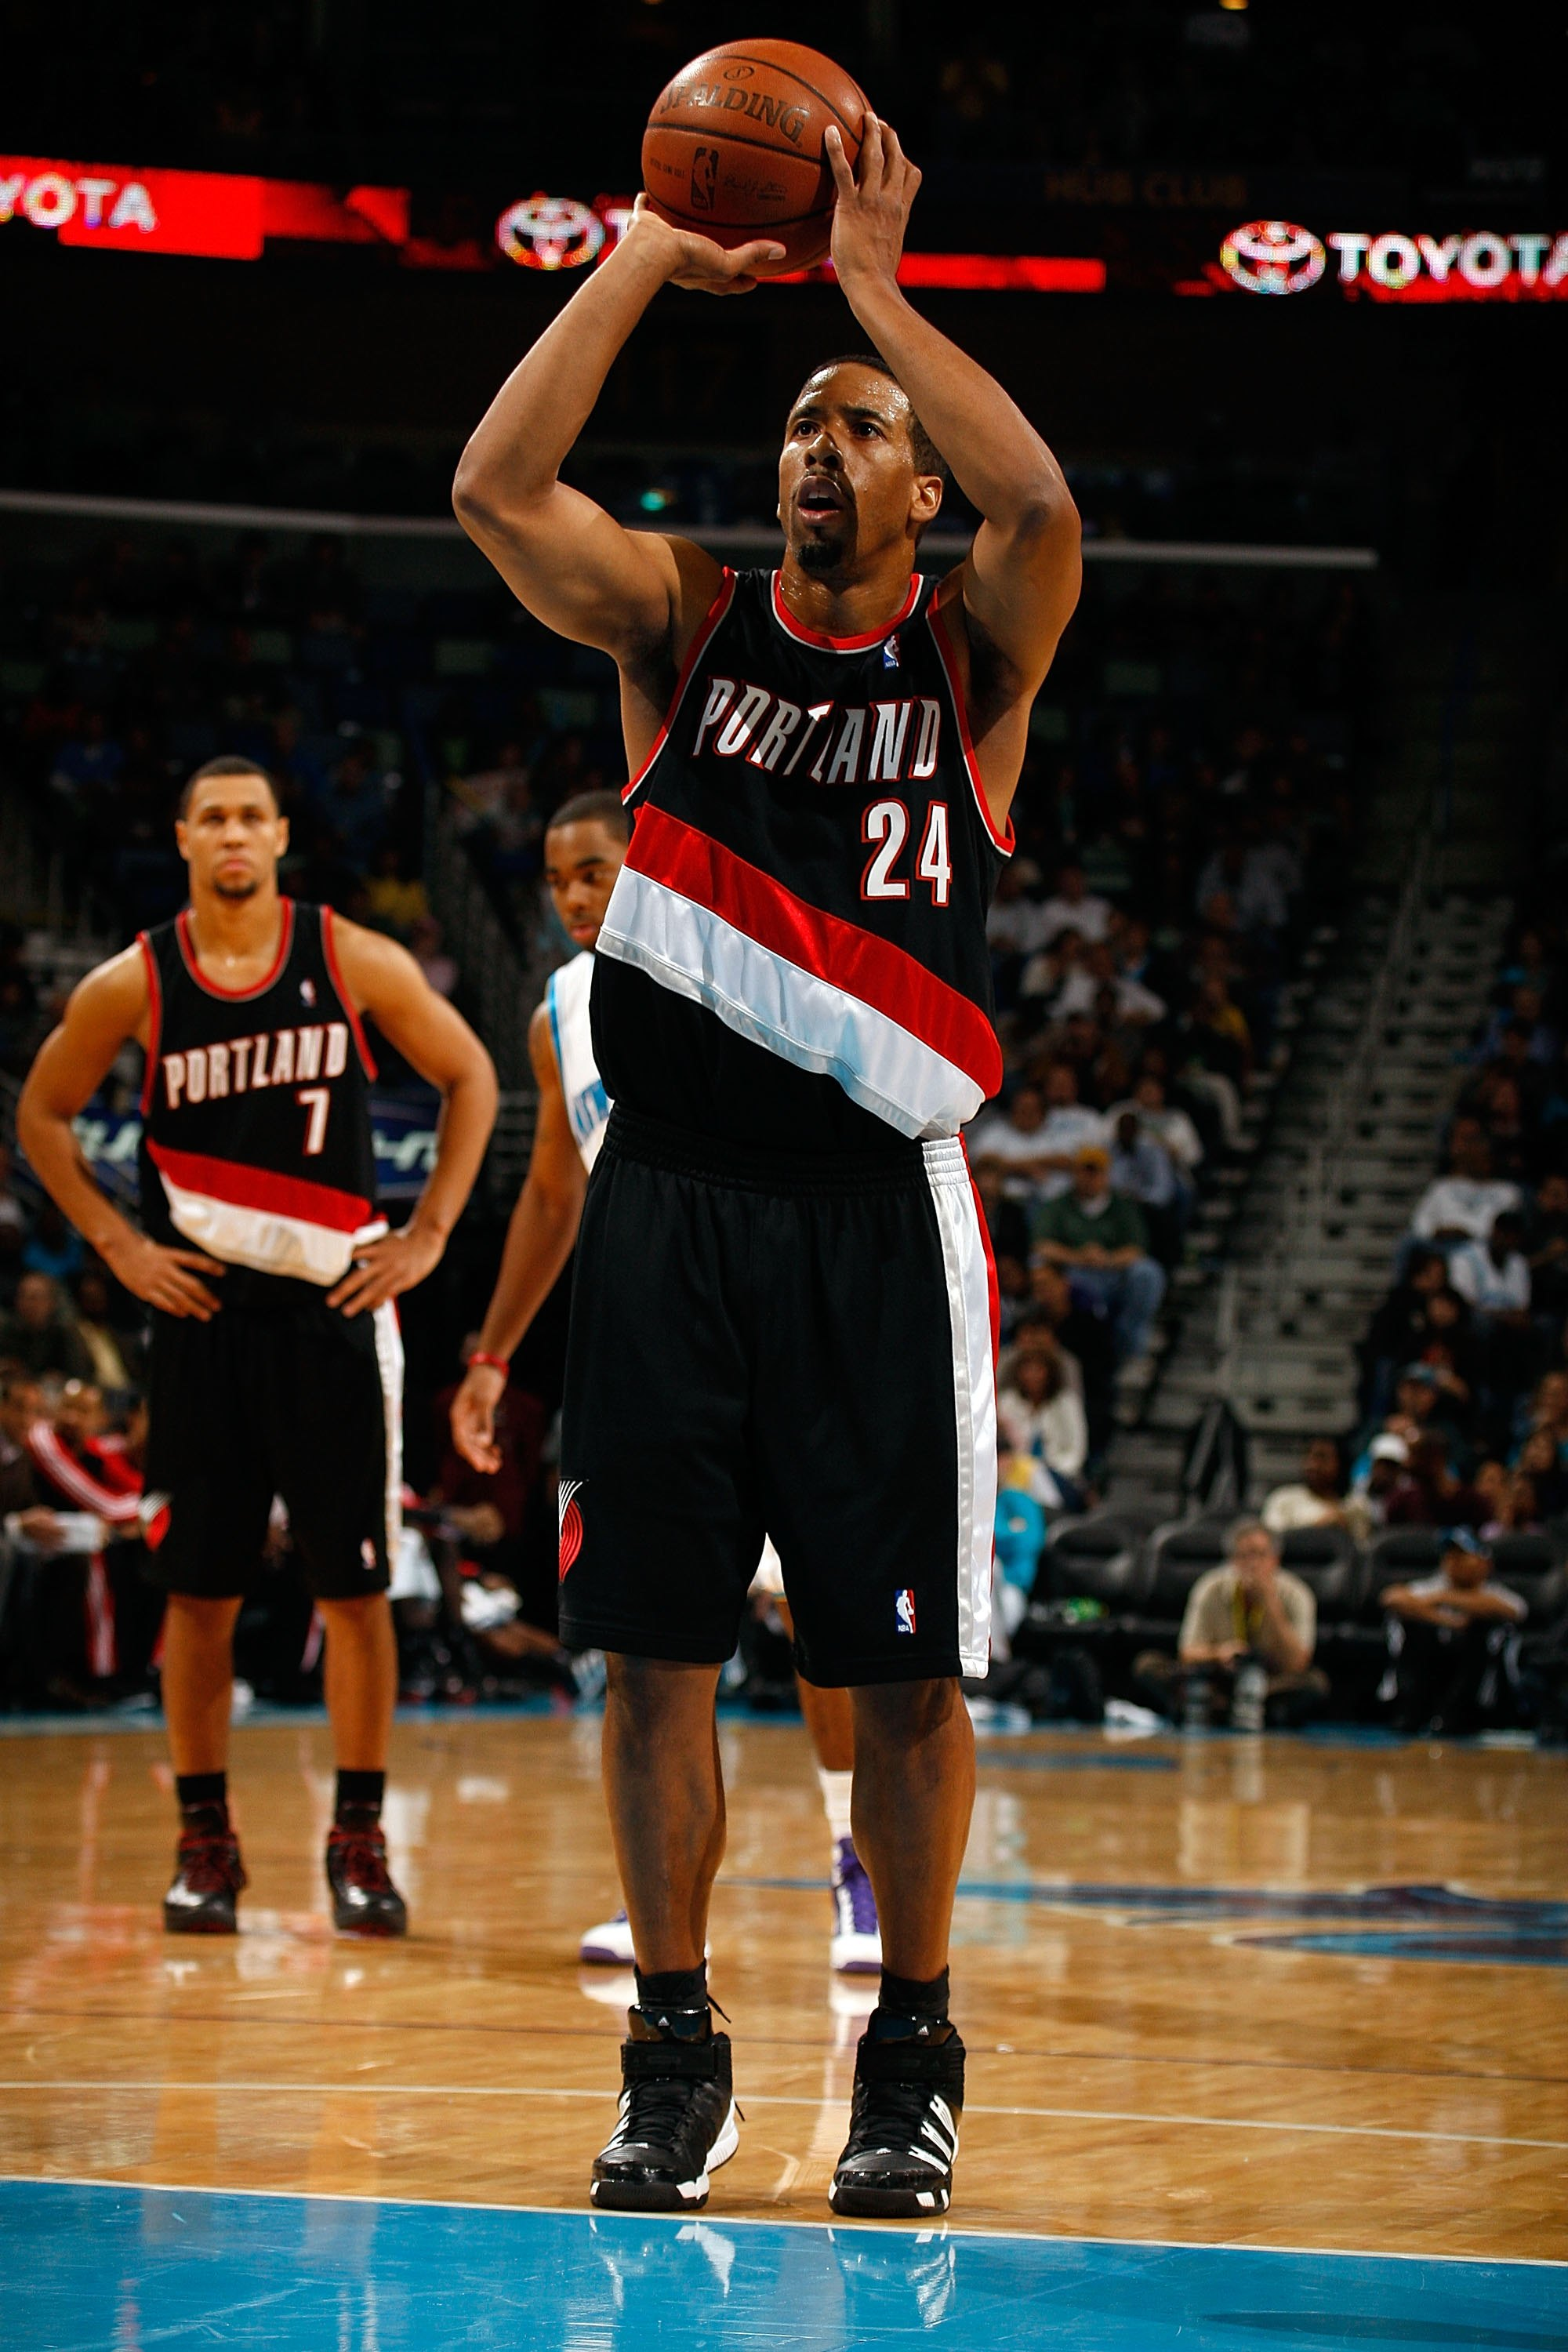 NEW ORLEANS - NOVEMBER 13:  Andre Miller #24 of the Portland Trail Blazers shoots a free throw against the New Orleans Hornets at the New Orleans Arena on November 13, 2009 in New Orleans, Louisiana.  NOTE TO USER: User expressly acknowledges and agrees t